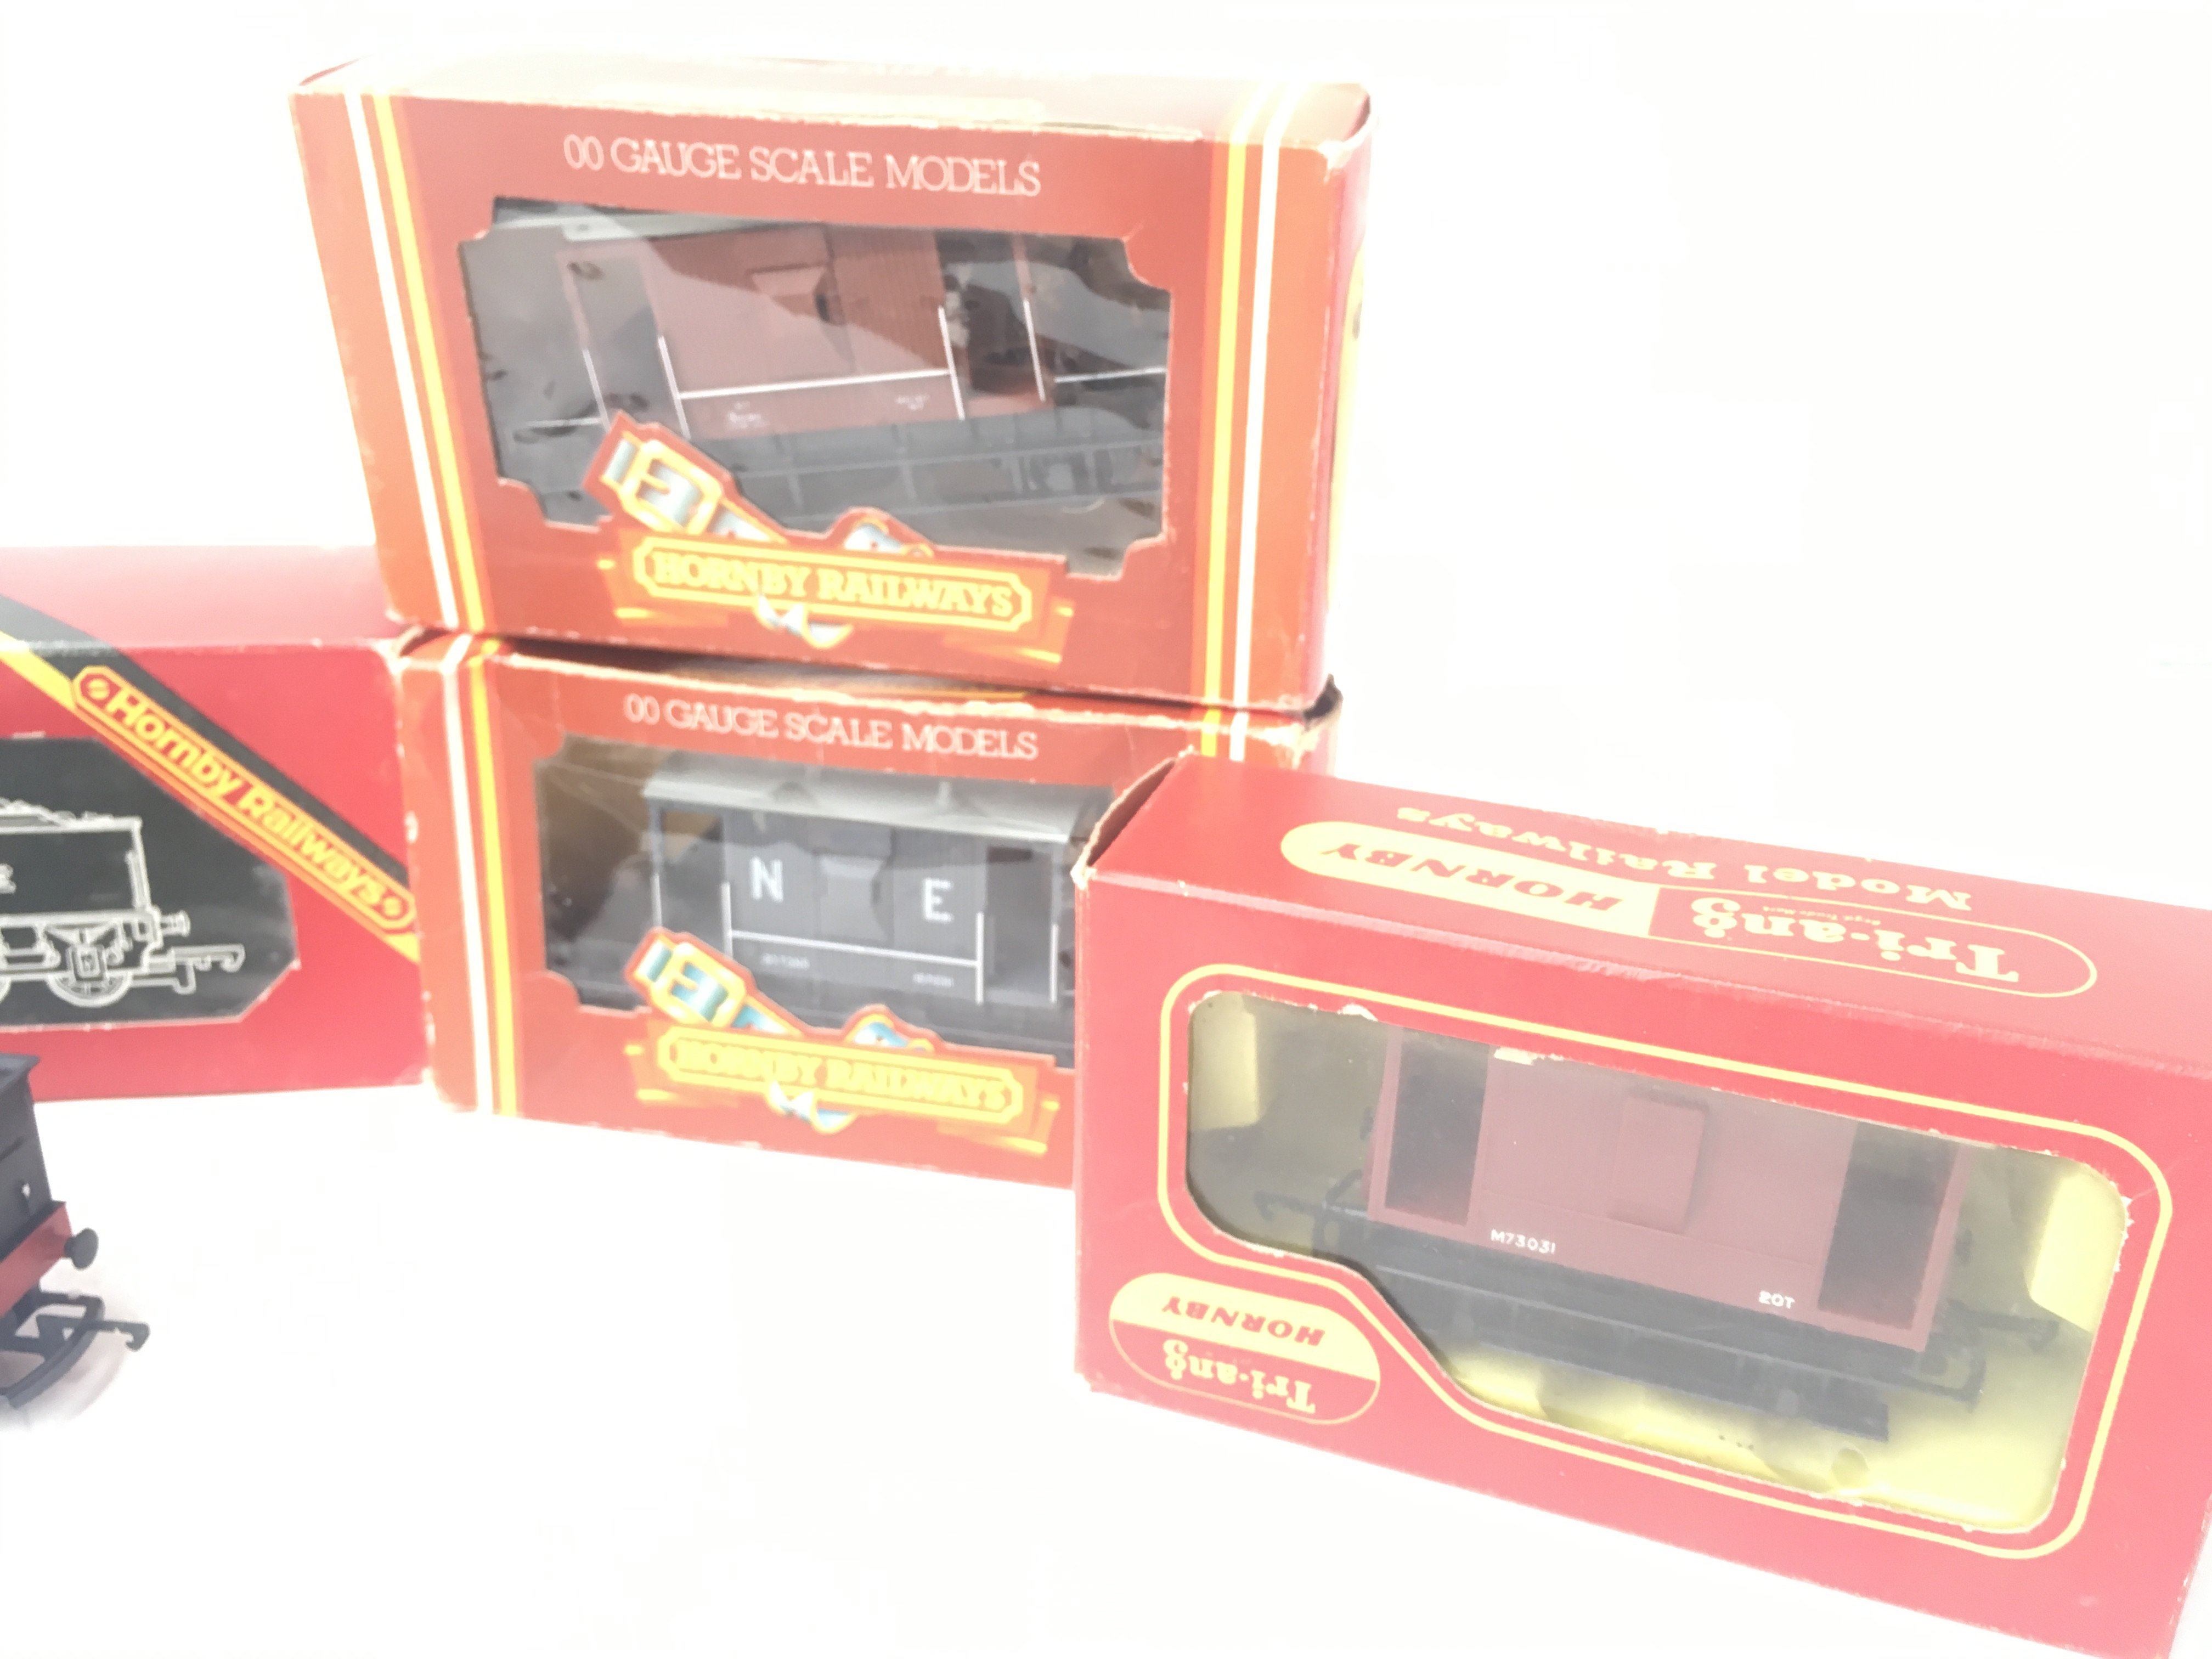 A Boxed Hornby 00 Gauge Class B12 Locomotive # R.0 - Image 3 of 4